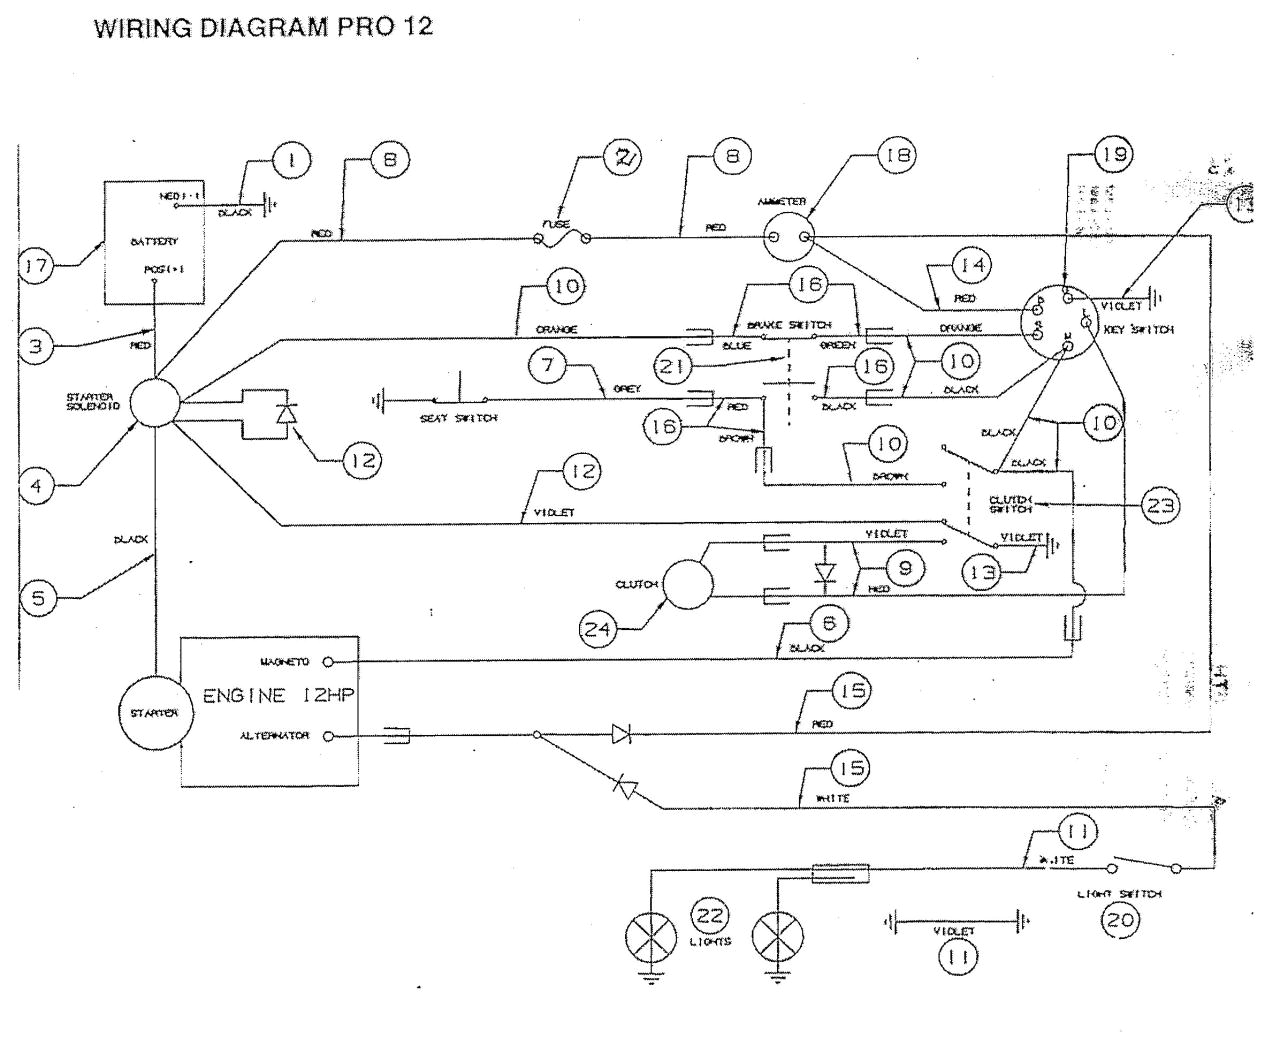 briggs and stratton model 42a707 wiring diagram jpg